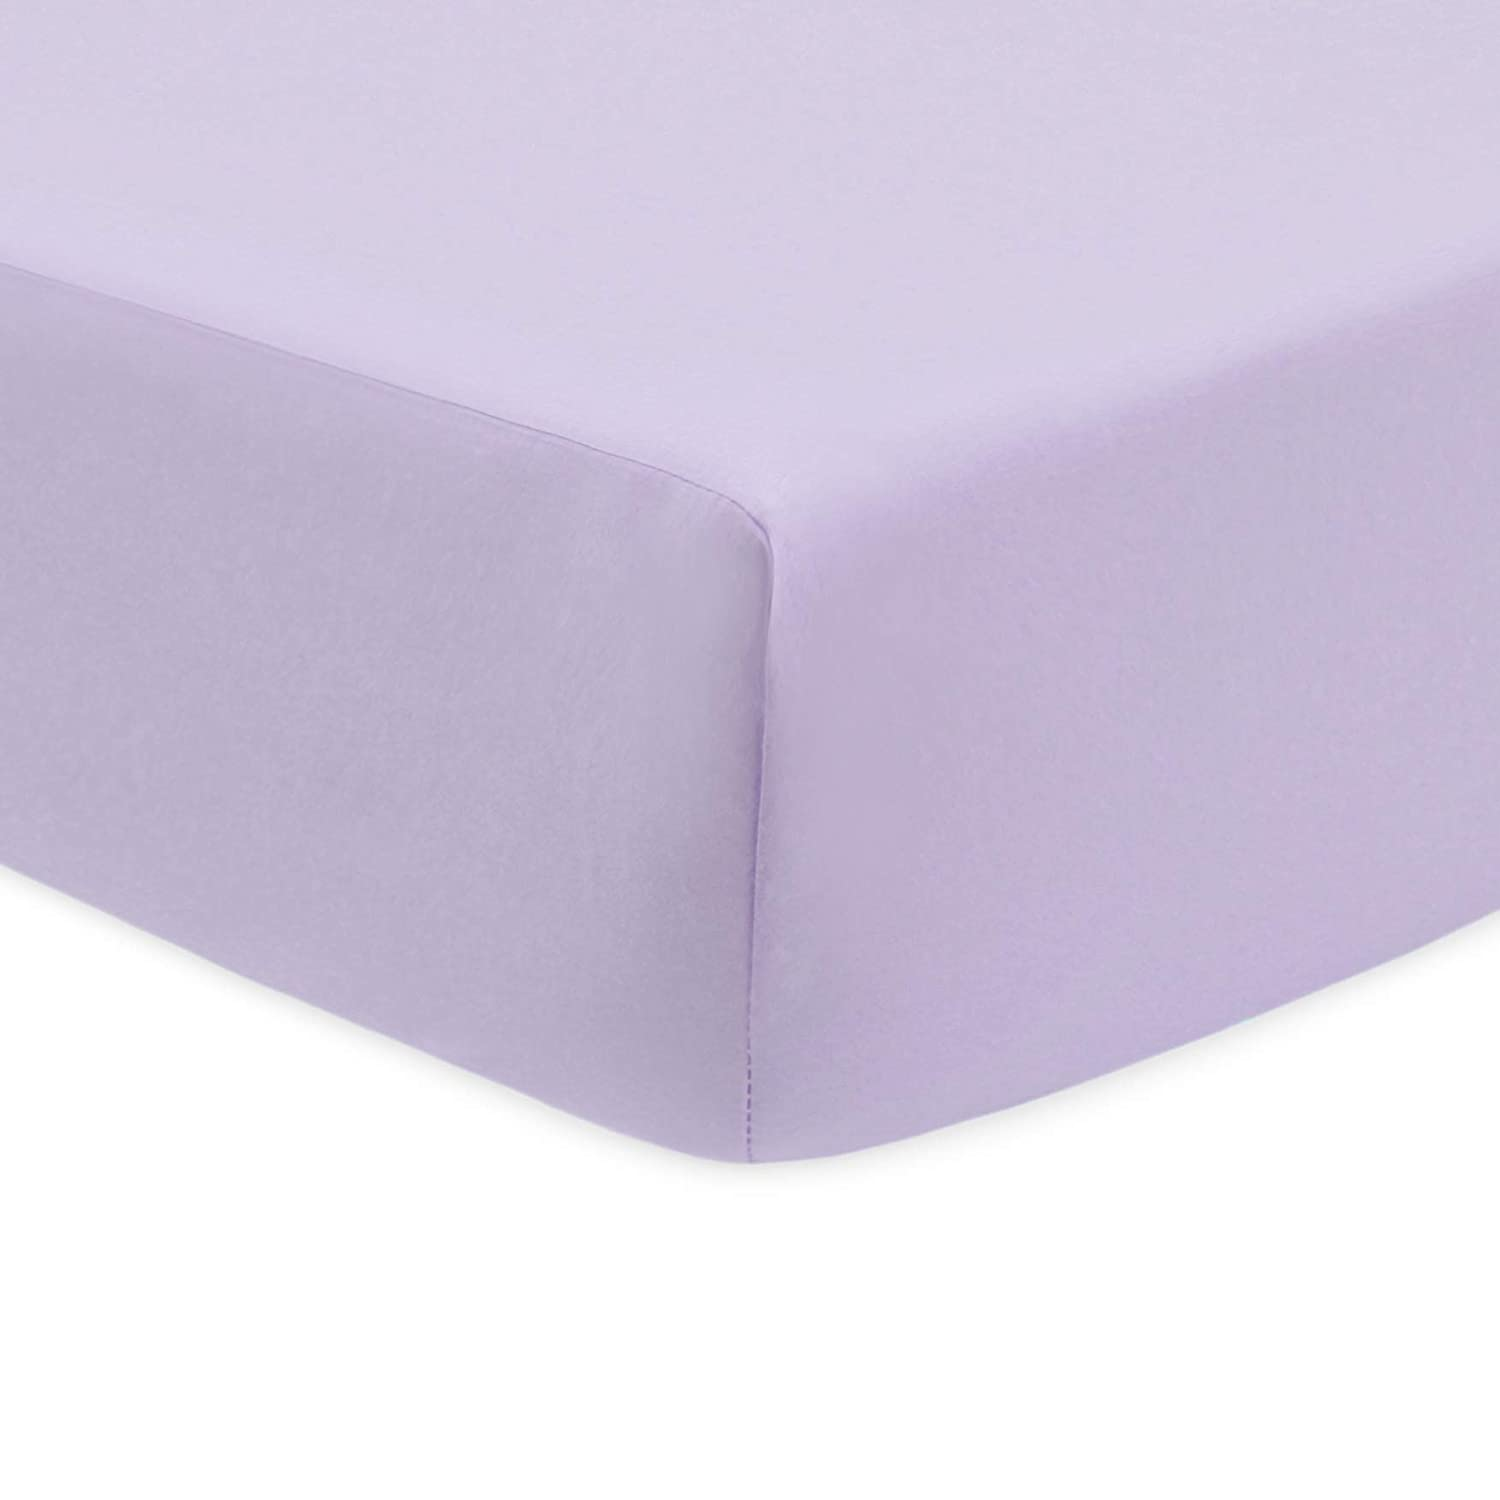 American Baby Company 100% Natural Cotton Percale Fitted Crib Sheet for Standard Crib and Toddler Mattresses, Lavender, Soft Breathable, for Girls